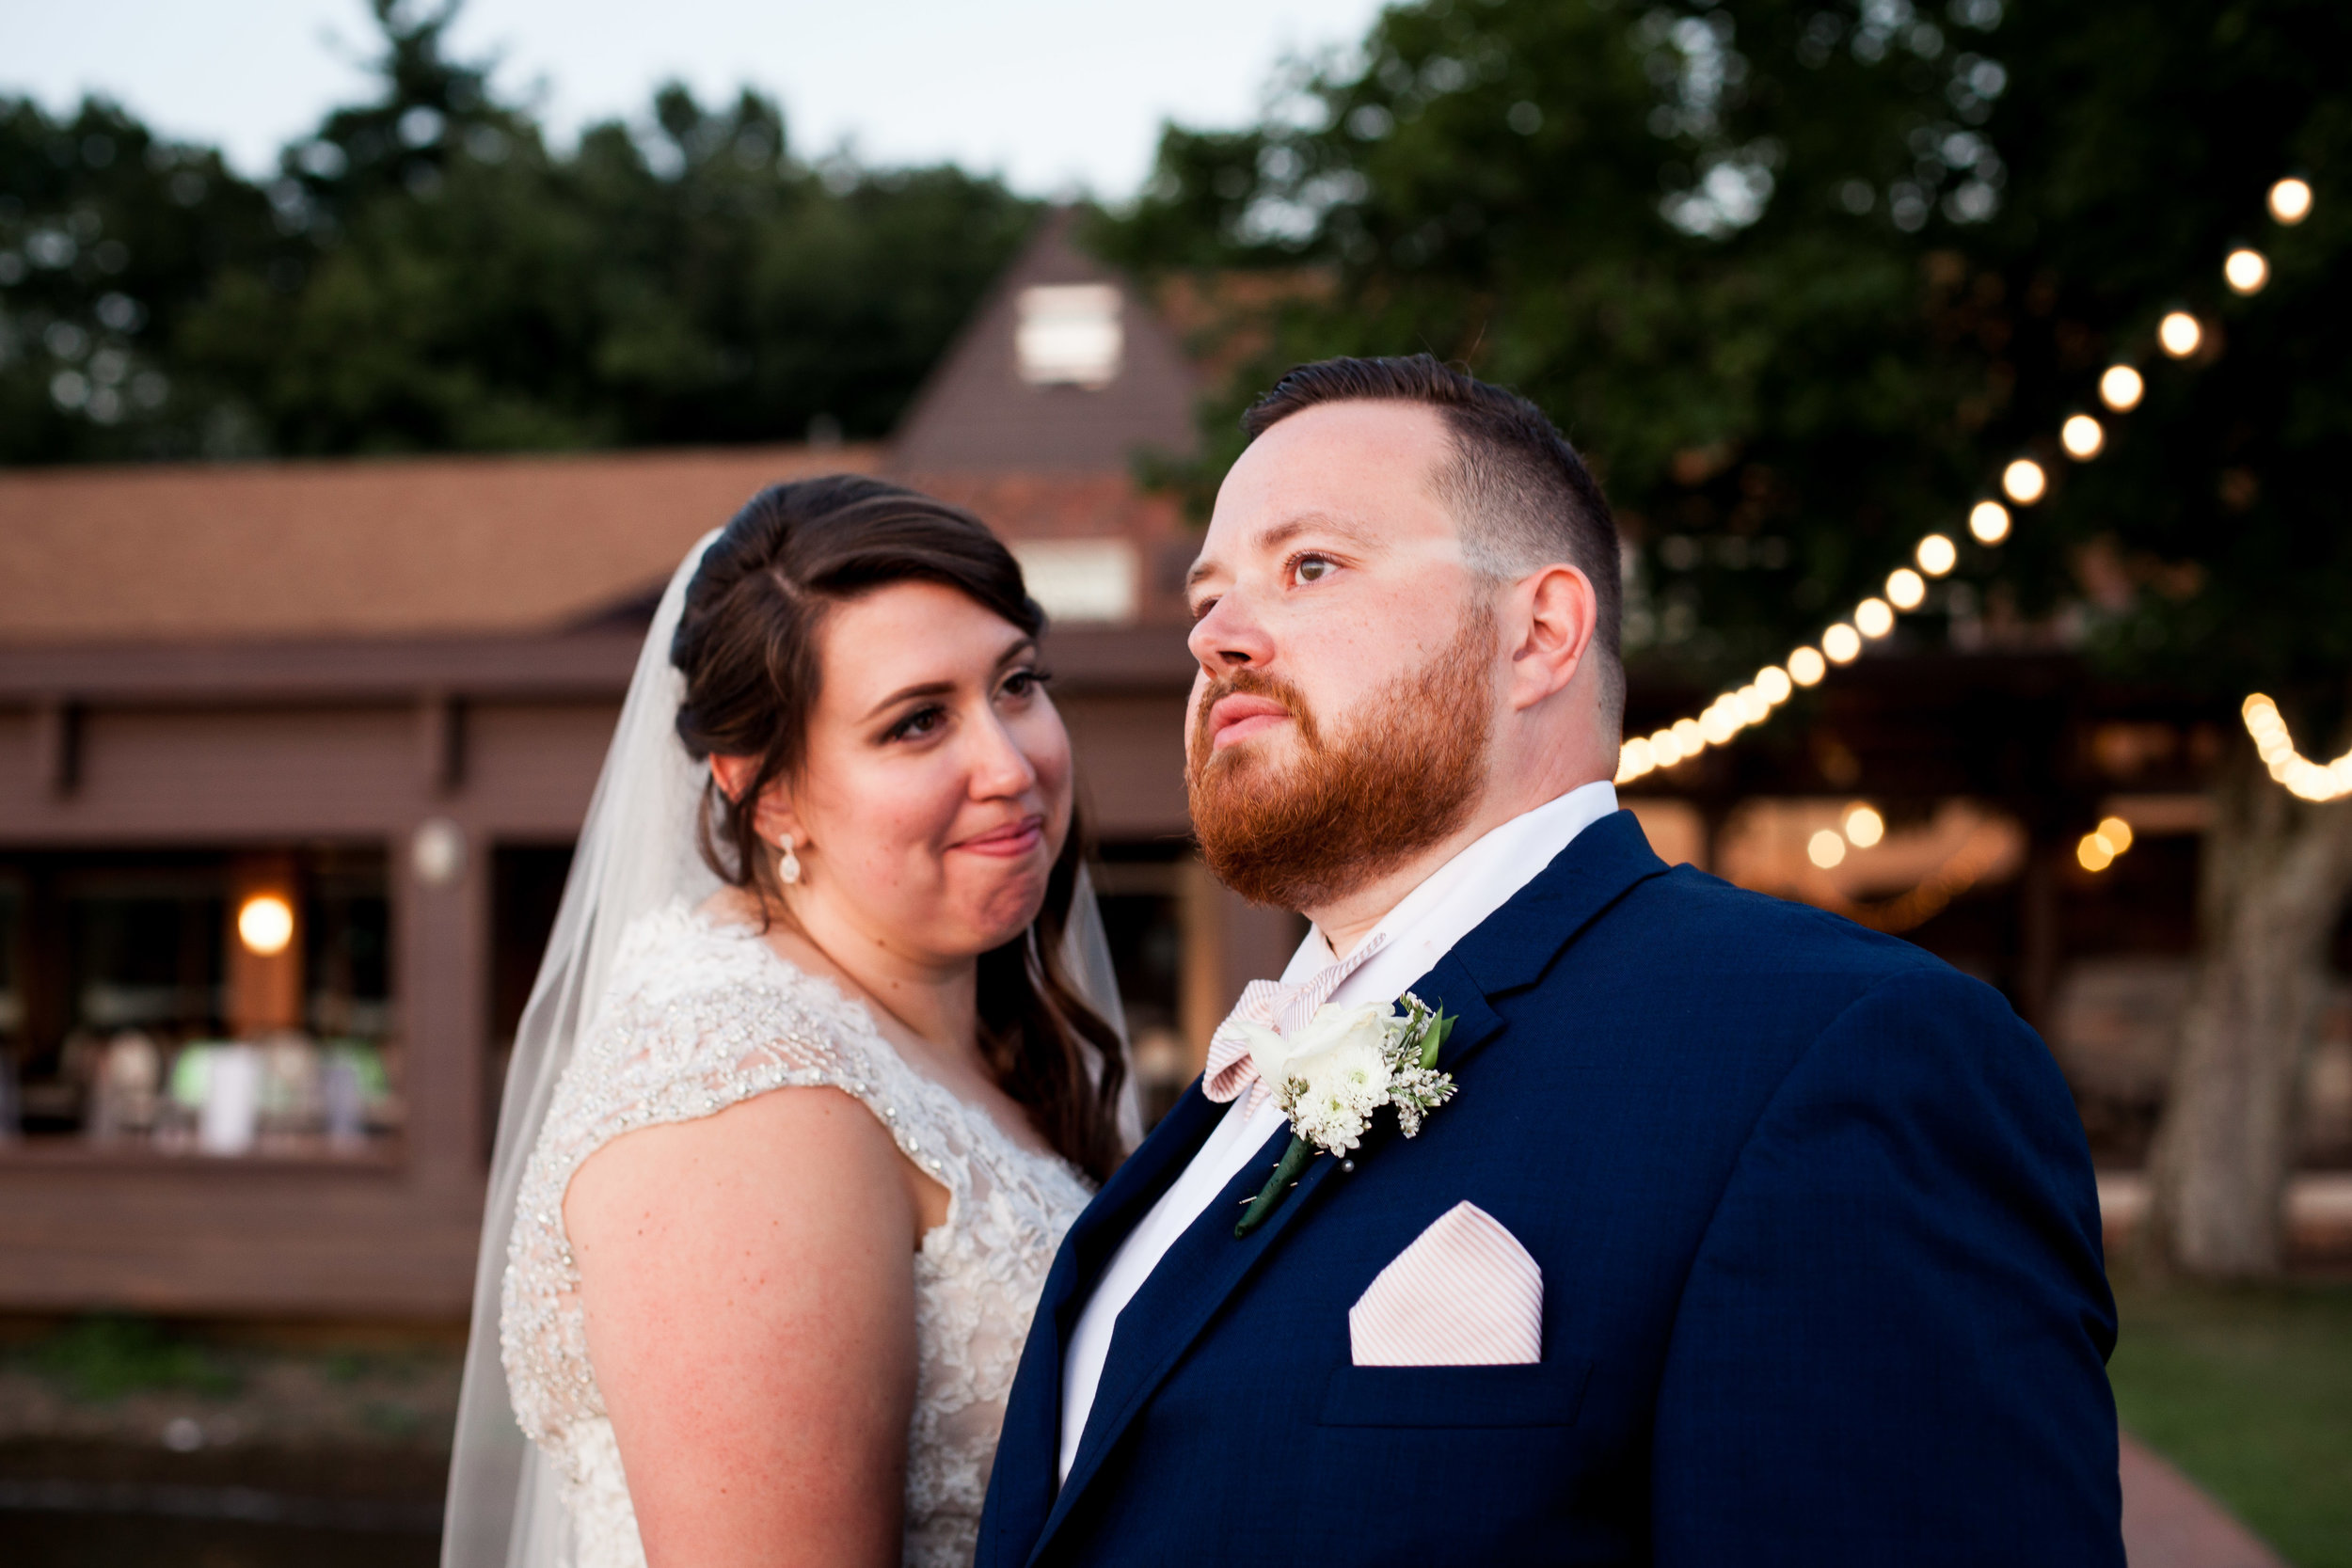 pittsburgh_wedding_photographer_liz_capuano-1710.jpg